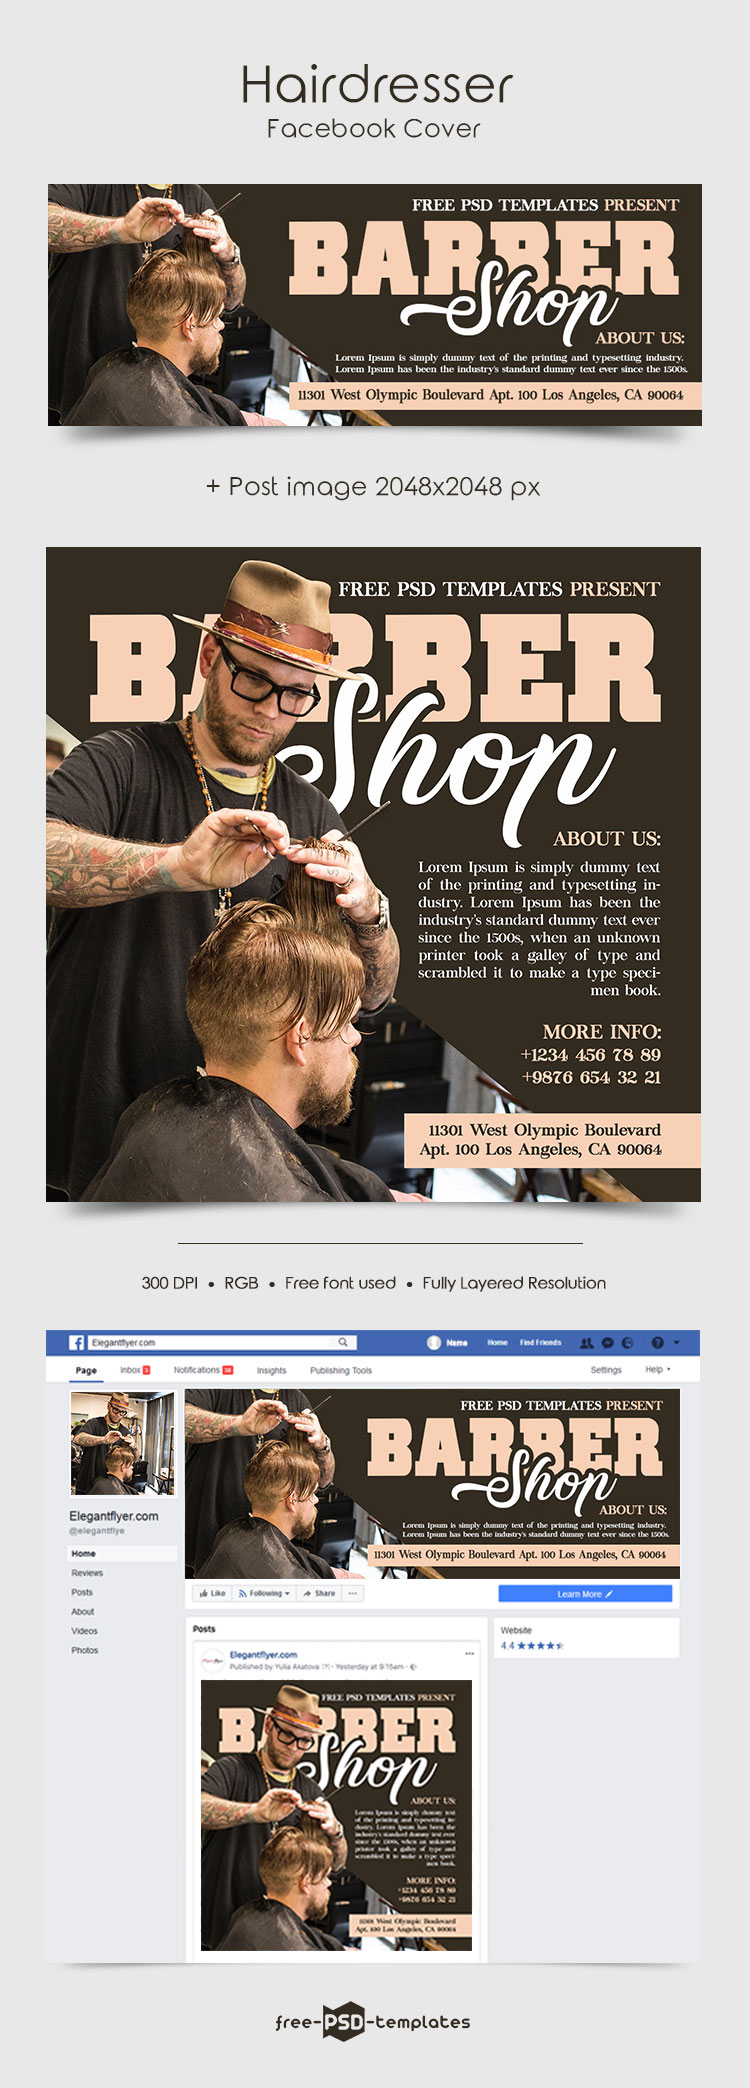 Free Hairdresser Facebook Cover | Free PSD Templates